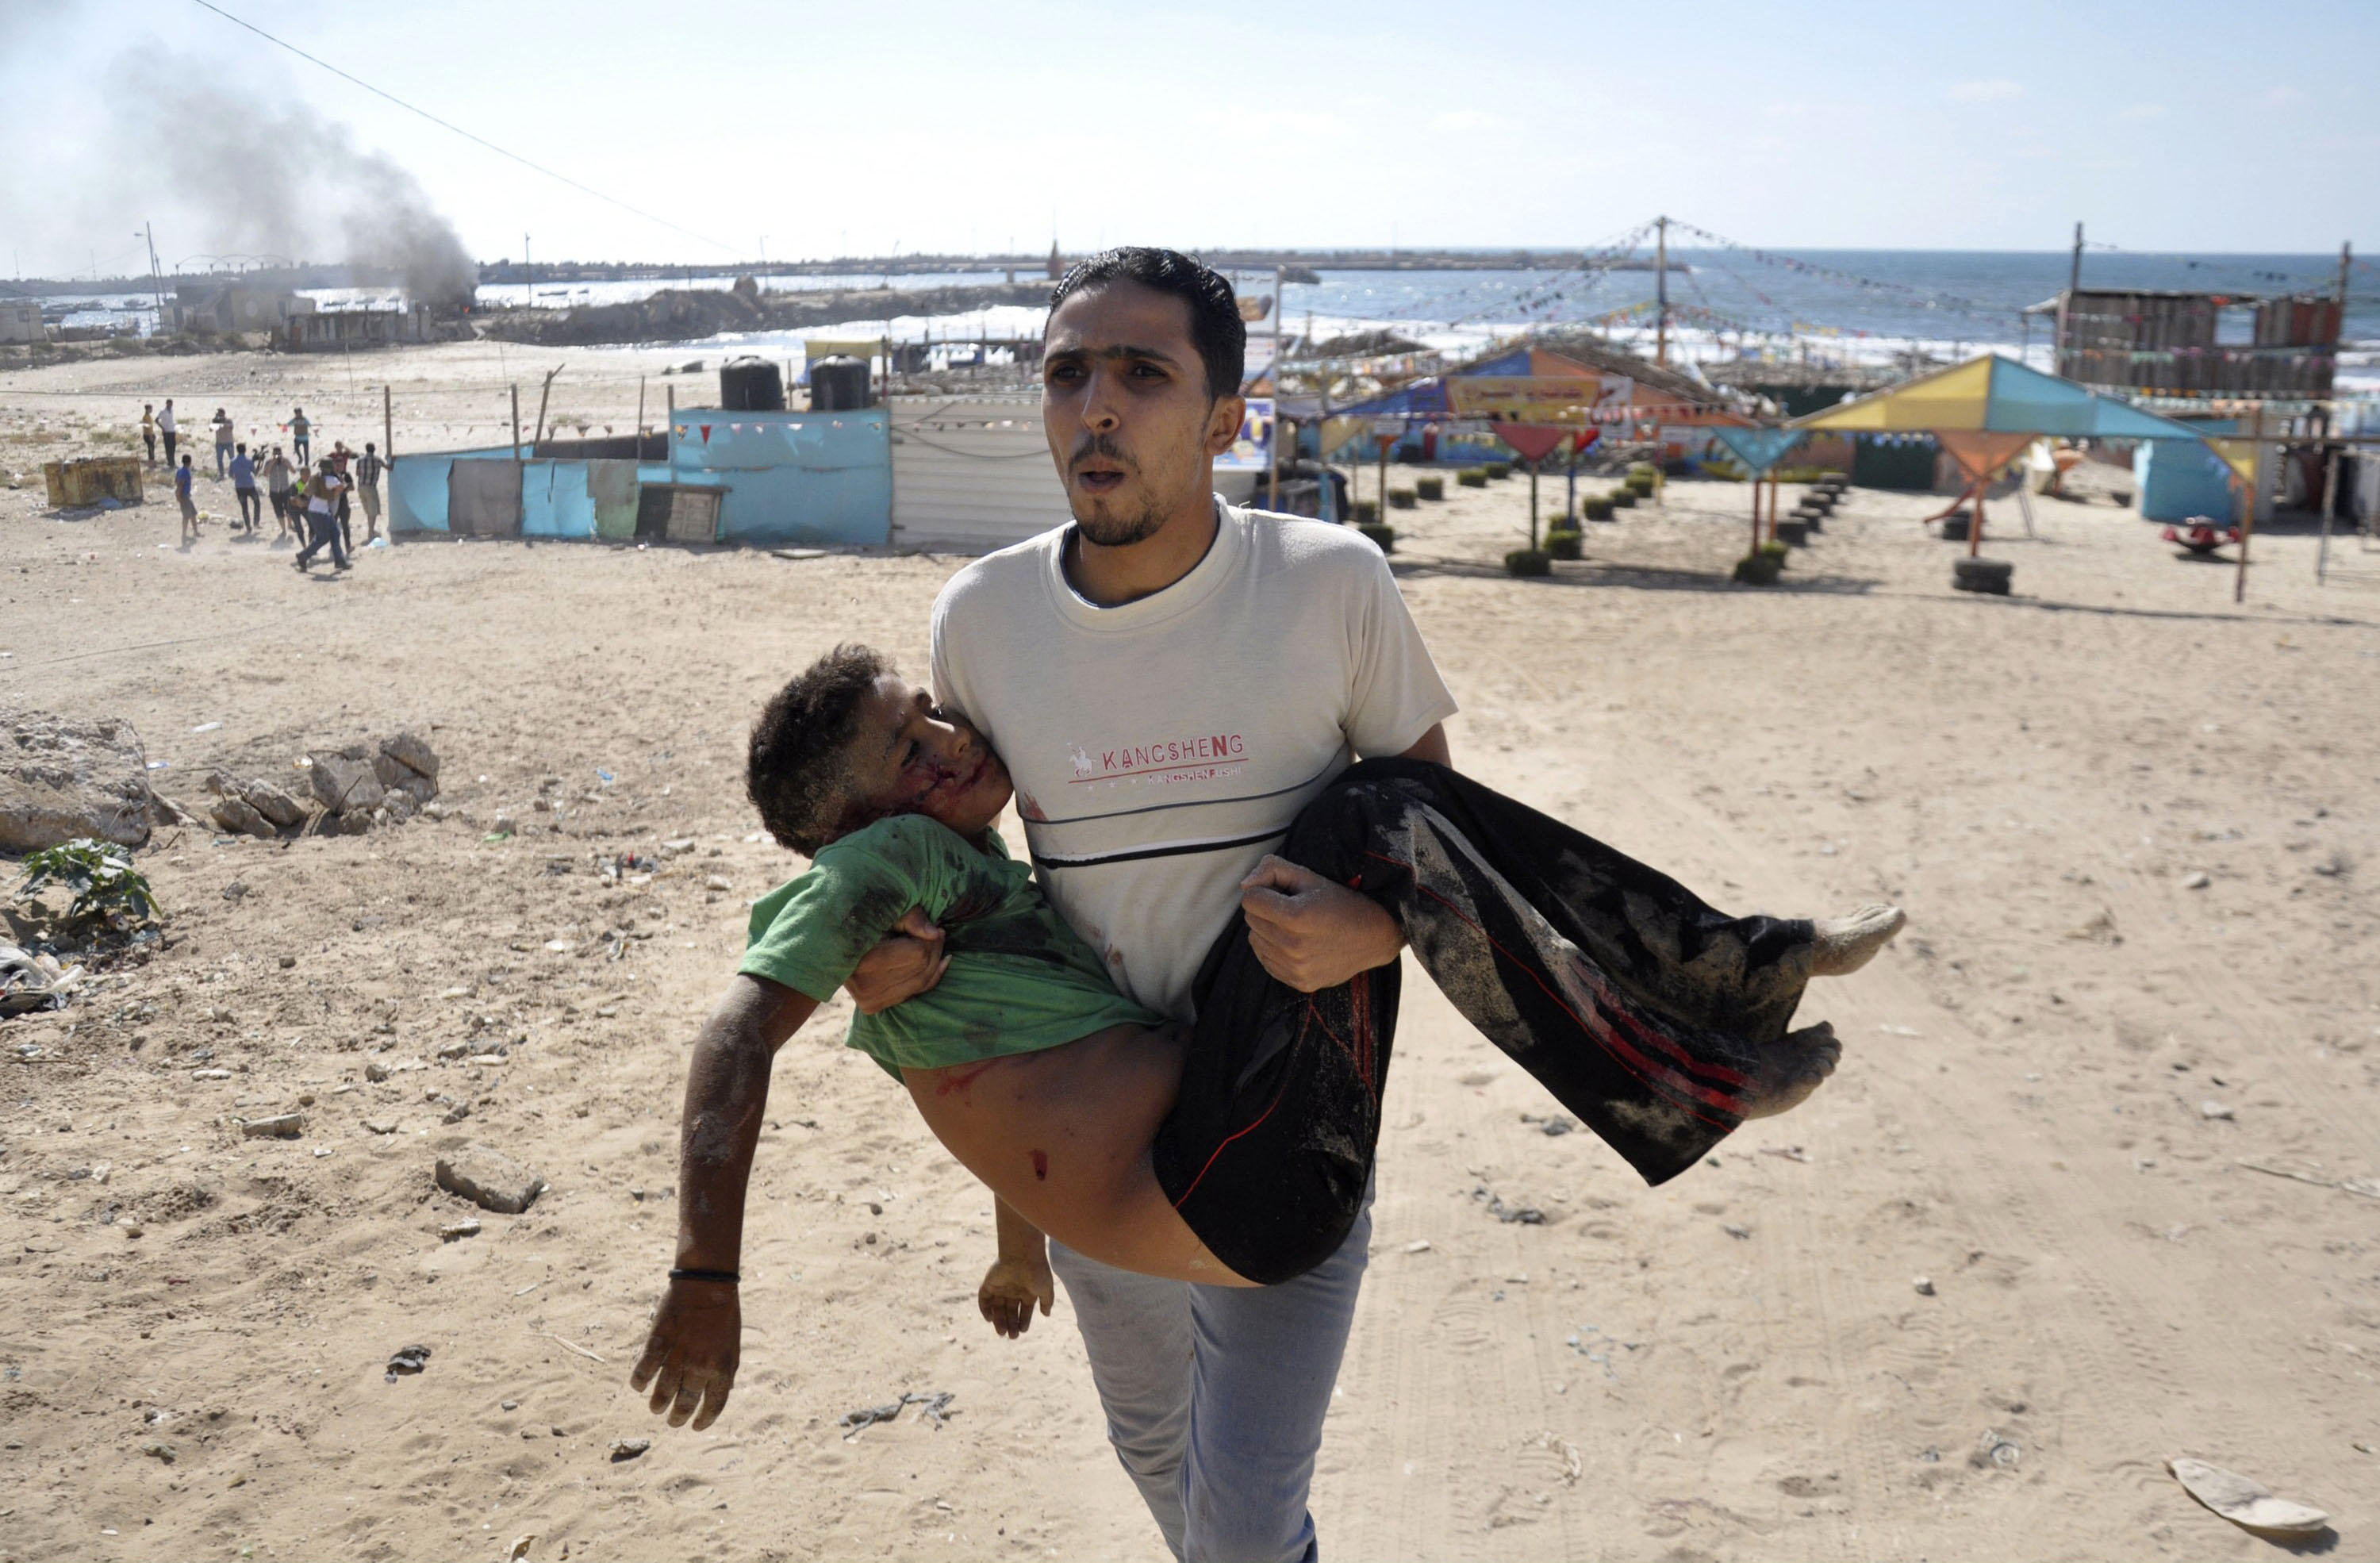 A Palestinian man carries the body of a boy, one of four whom medics say were killed by a shell fired by an Israeli naval gunboat, on a beach in Gaza City.